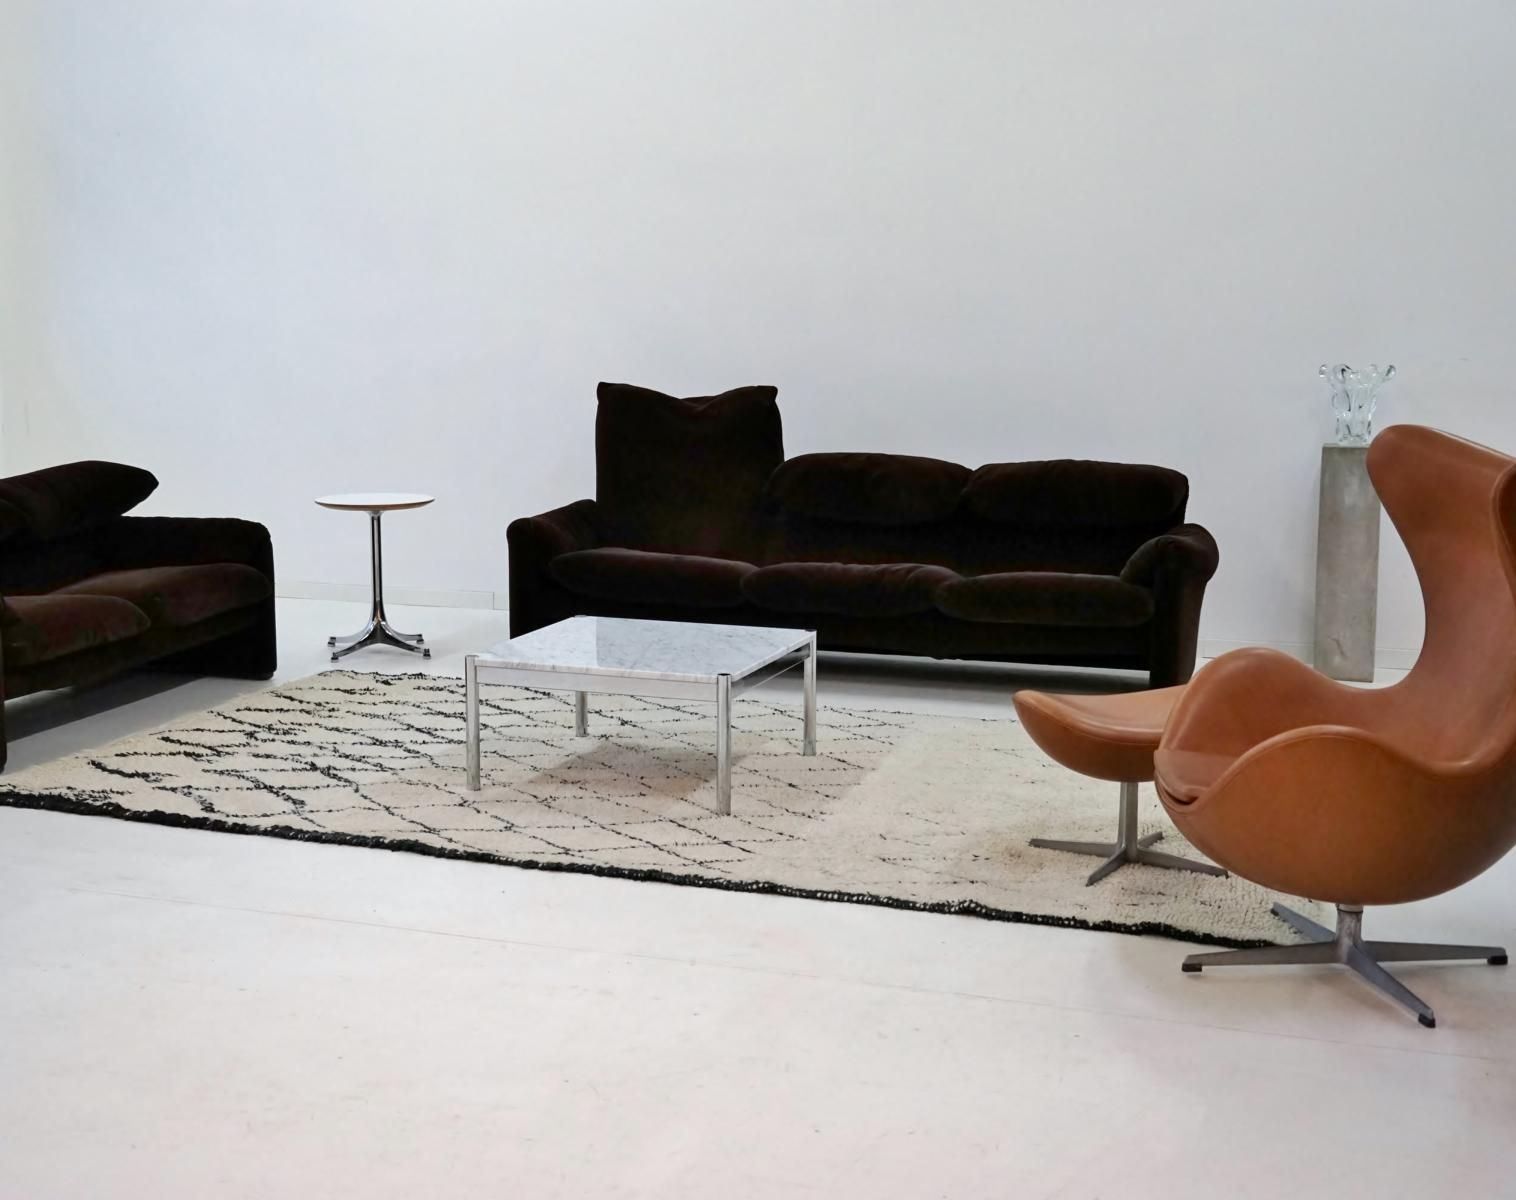 vintage couchtisch aus carrara marmor von usm haller bei. Black Bedroom Furniture Sets. Home Design Ideas